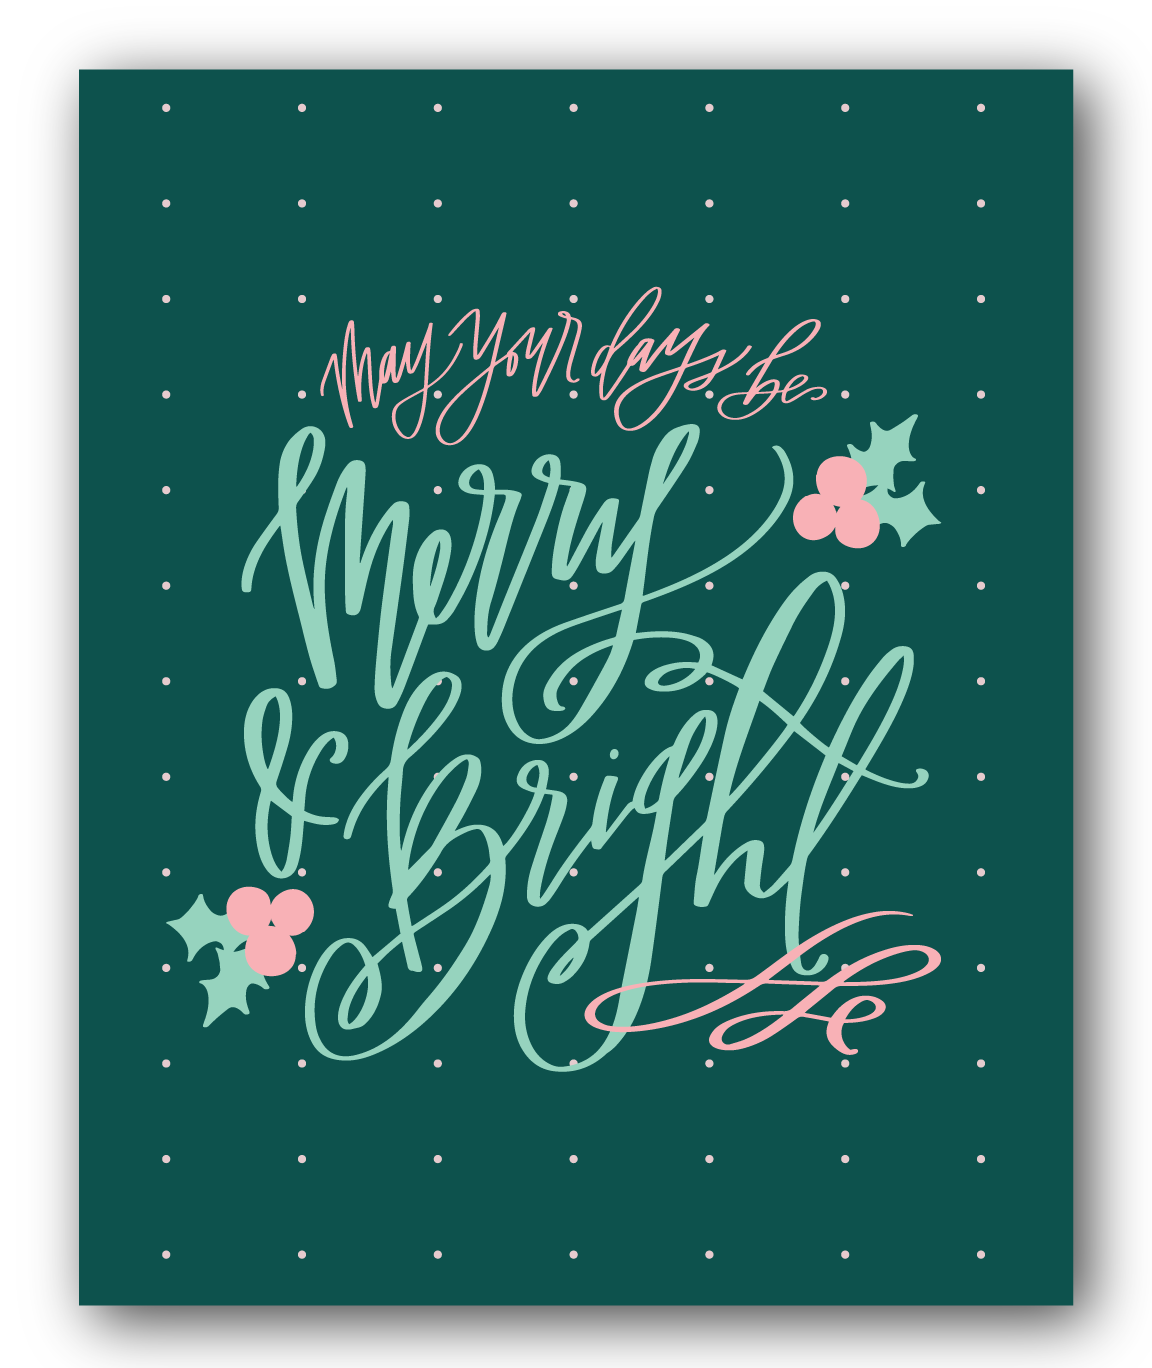 ConnarJoyCalligraphy-Merry&Bright1.png